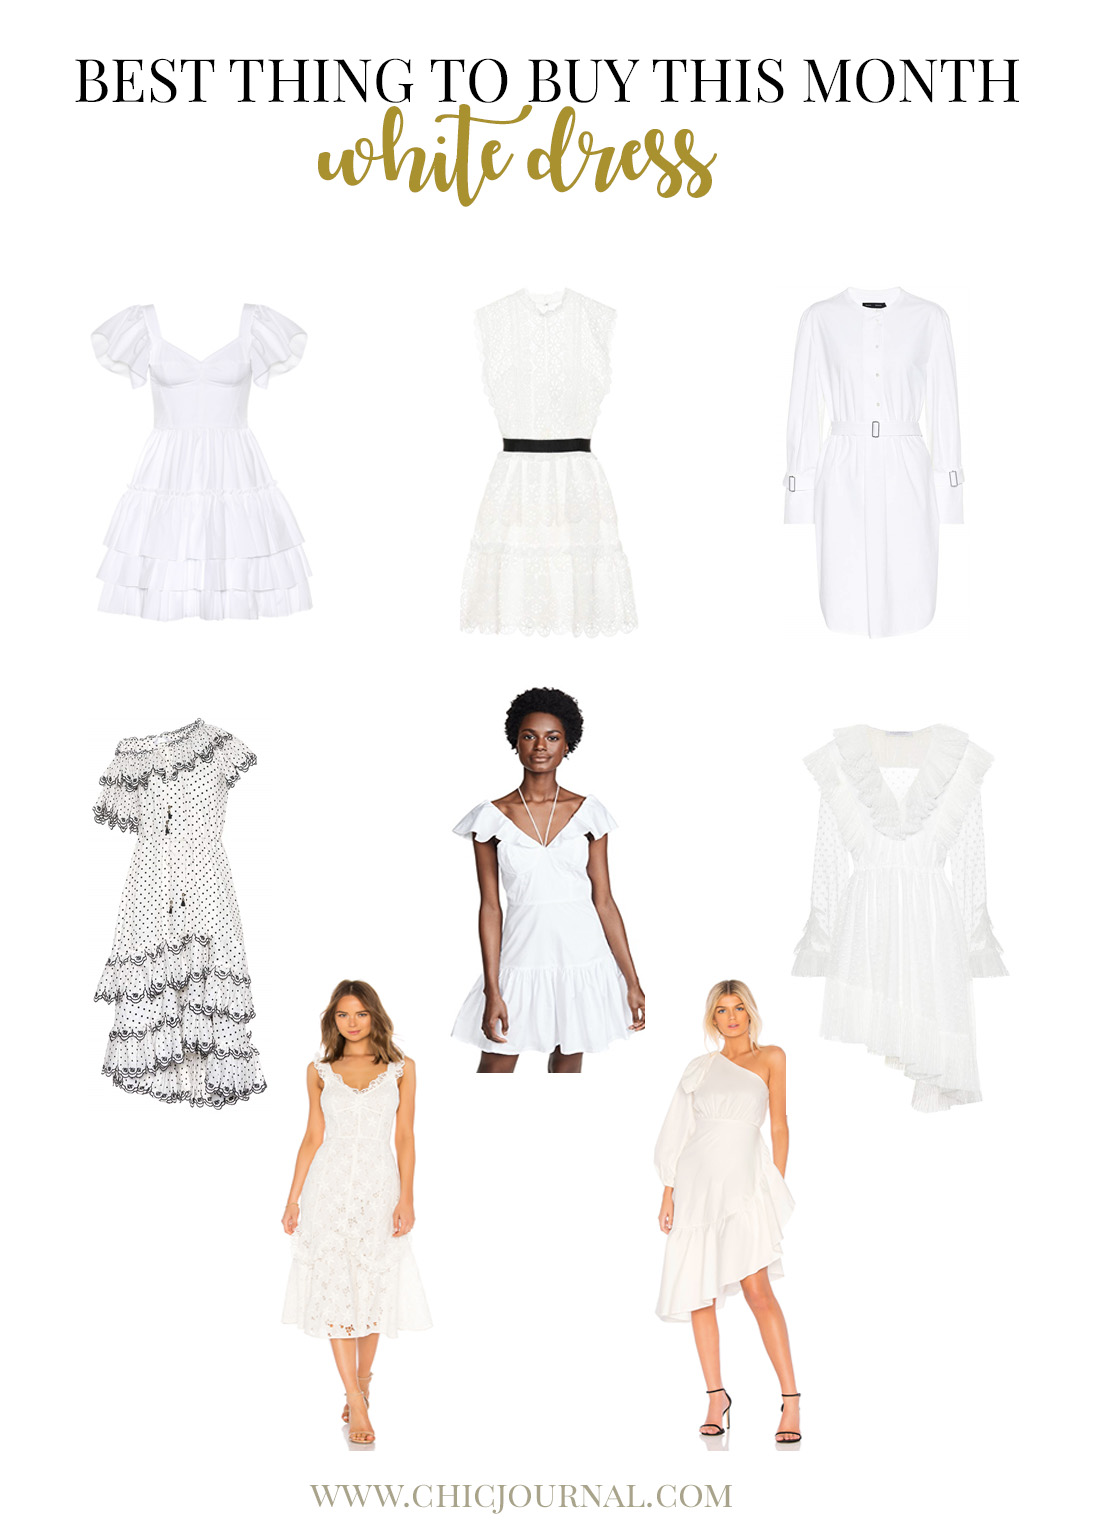 Best white dress to buy this summer